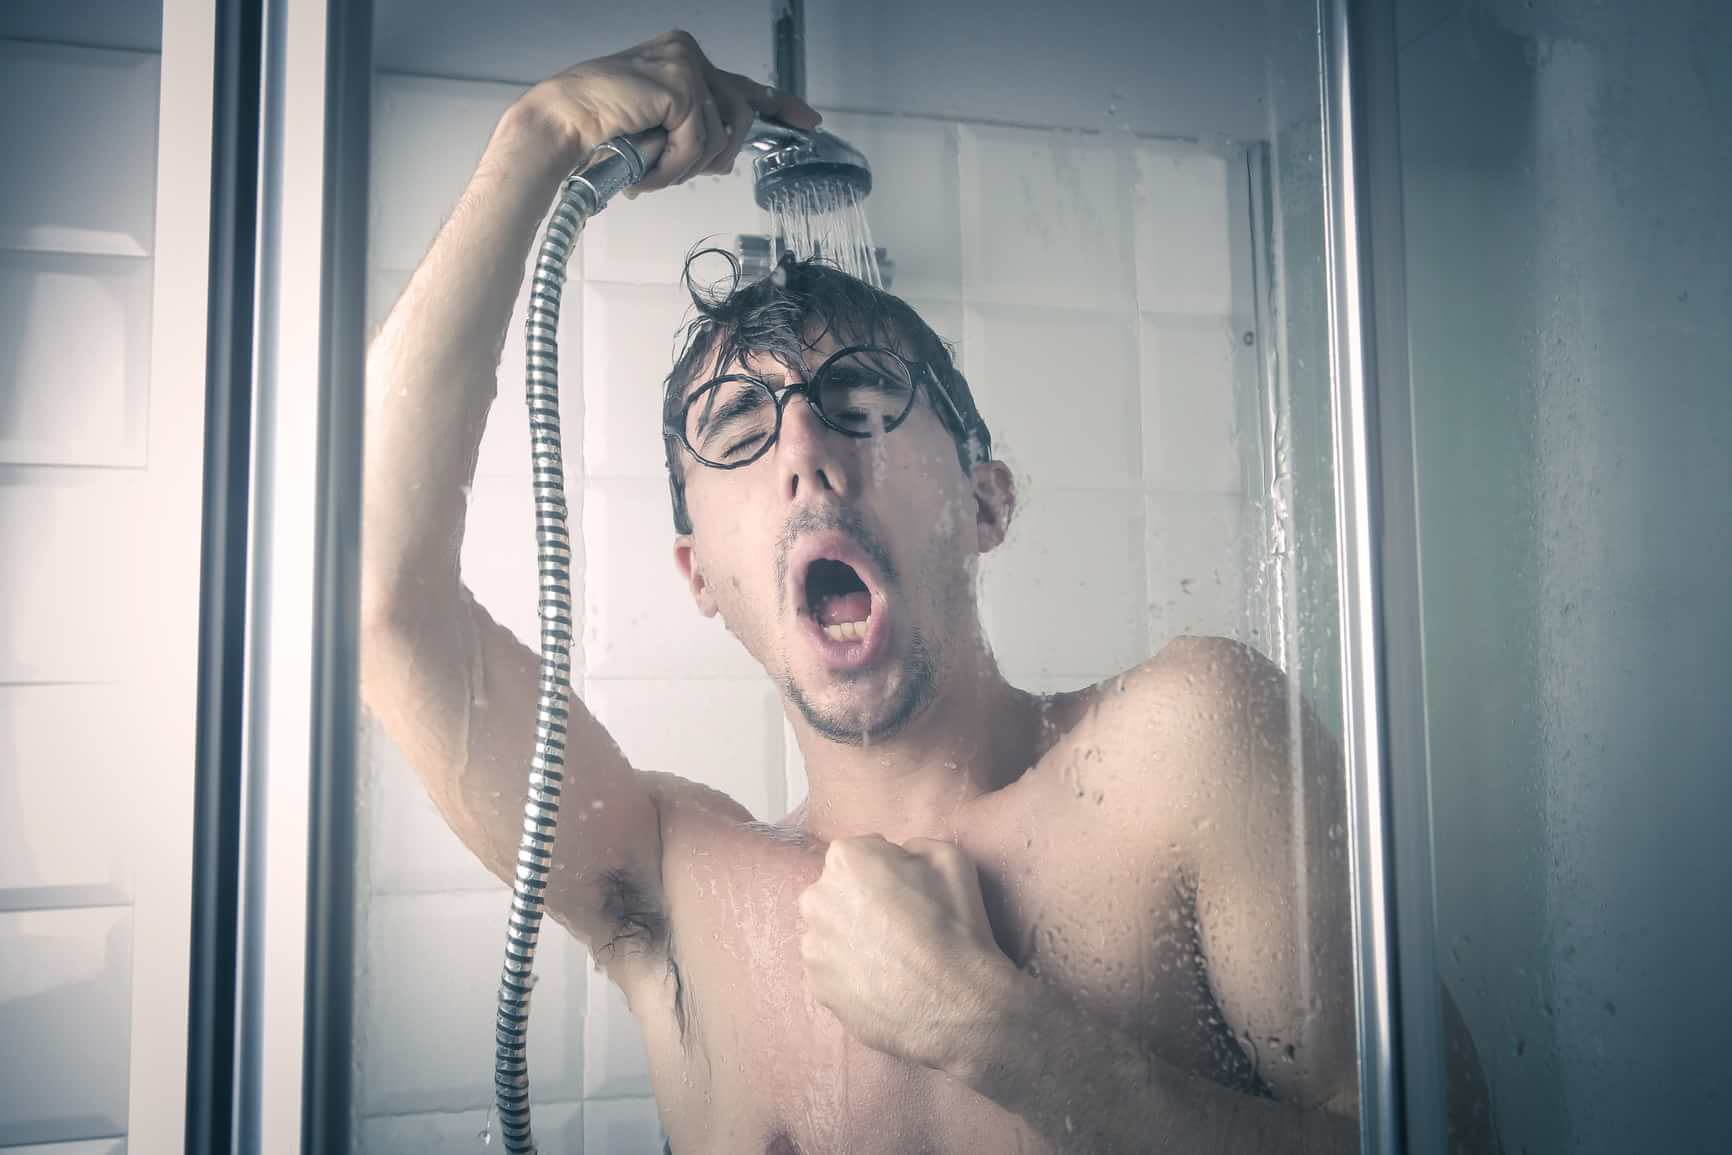 does a cold shower give you more power zero to alpha have you ever tried an ice cold shower in the morning they are extremely healthy